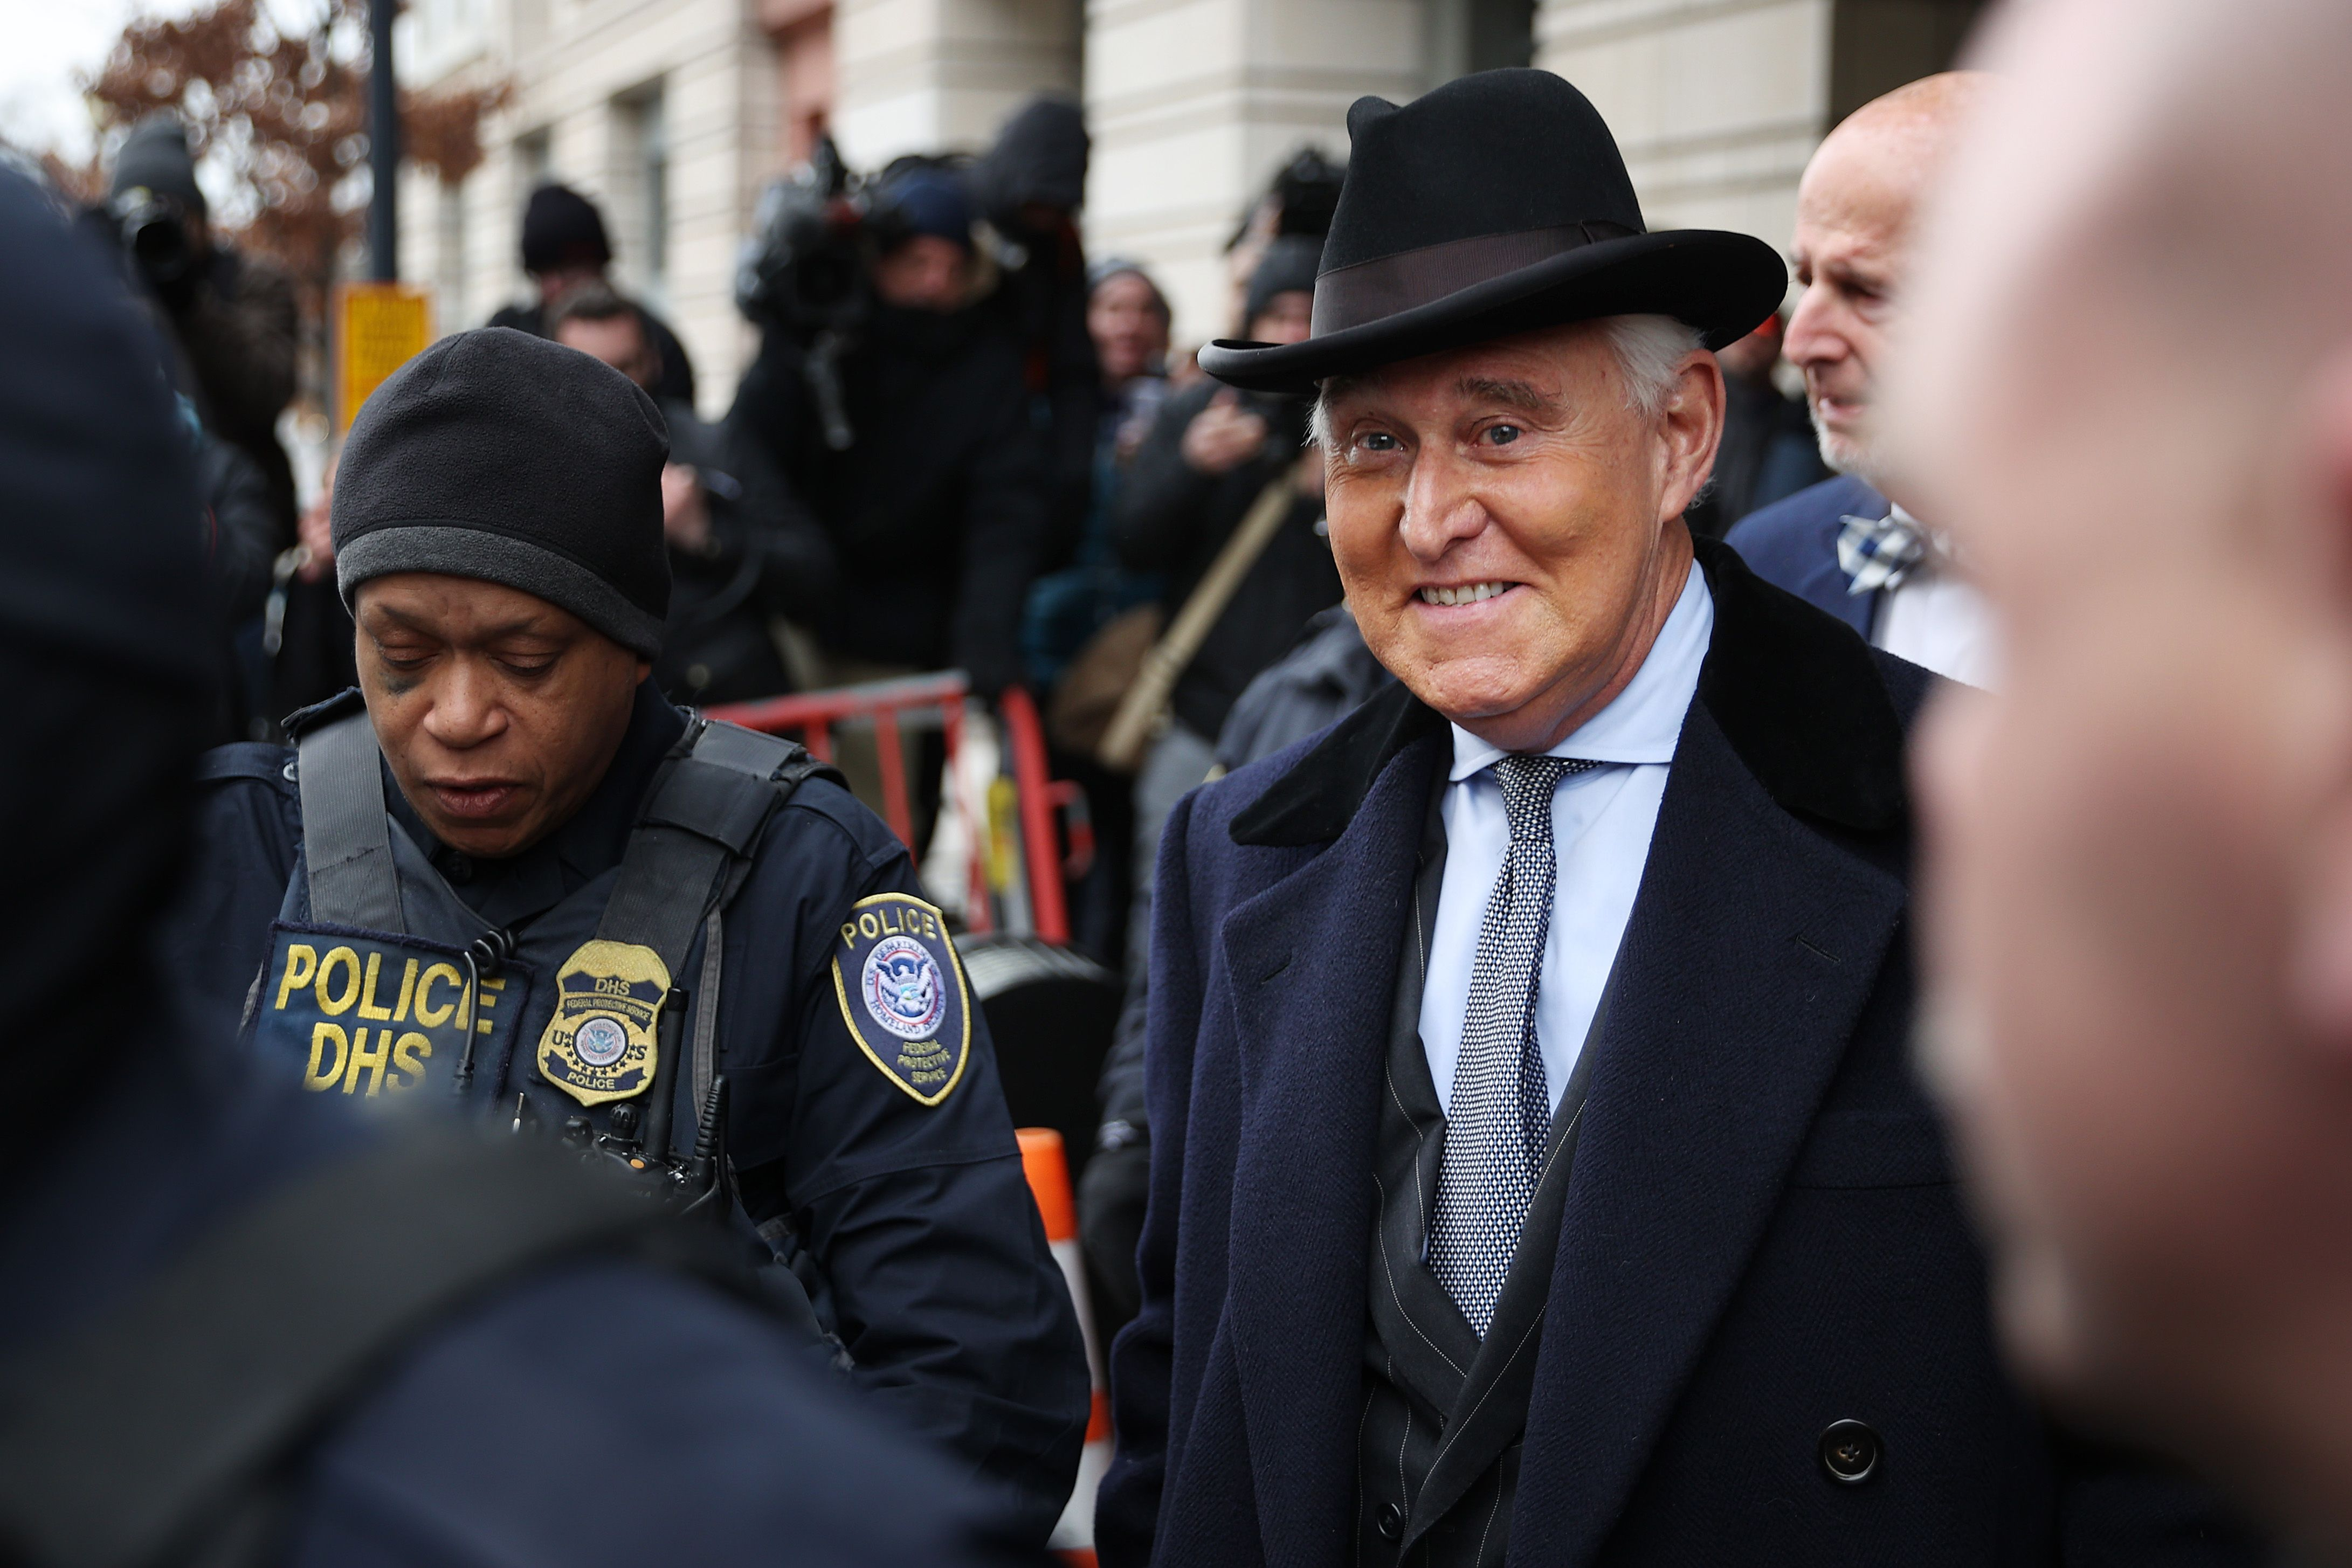 Trump Commuted His Pal Roger Stone's Prison Sentence